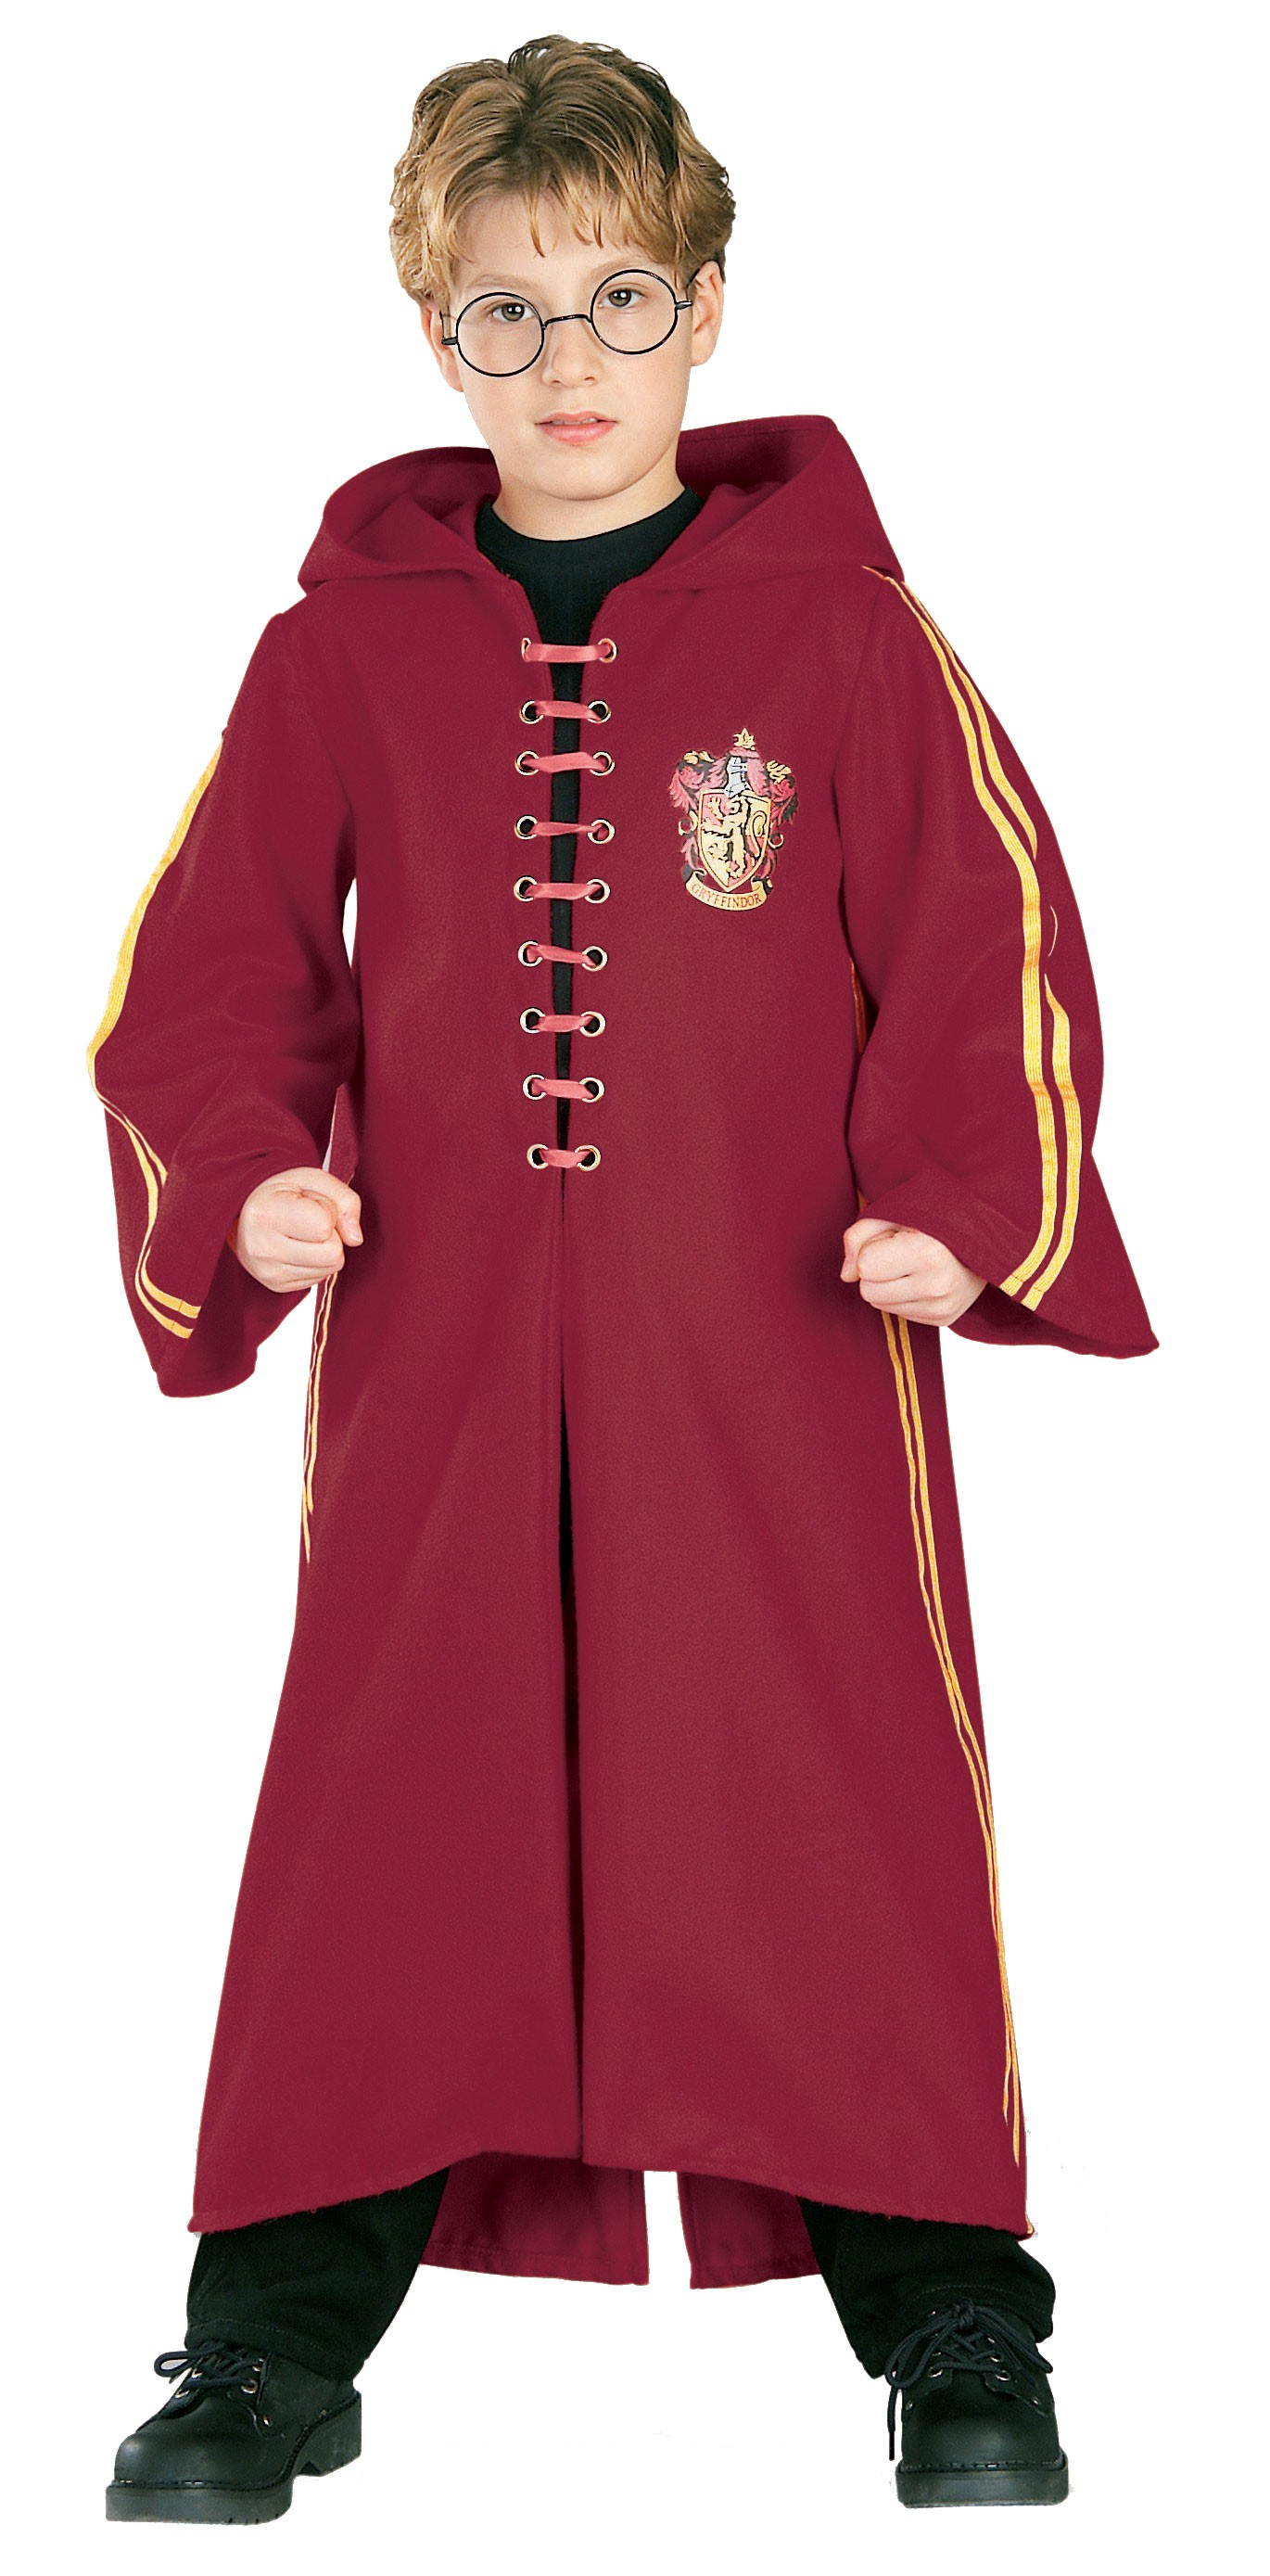 7584baf032 Harry Potter Quidditch Robe Super Deluxe Child Costume.jpg